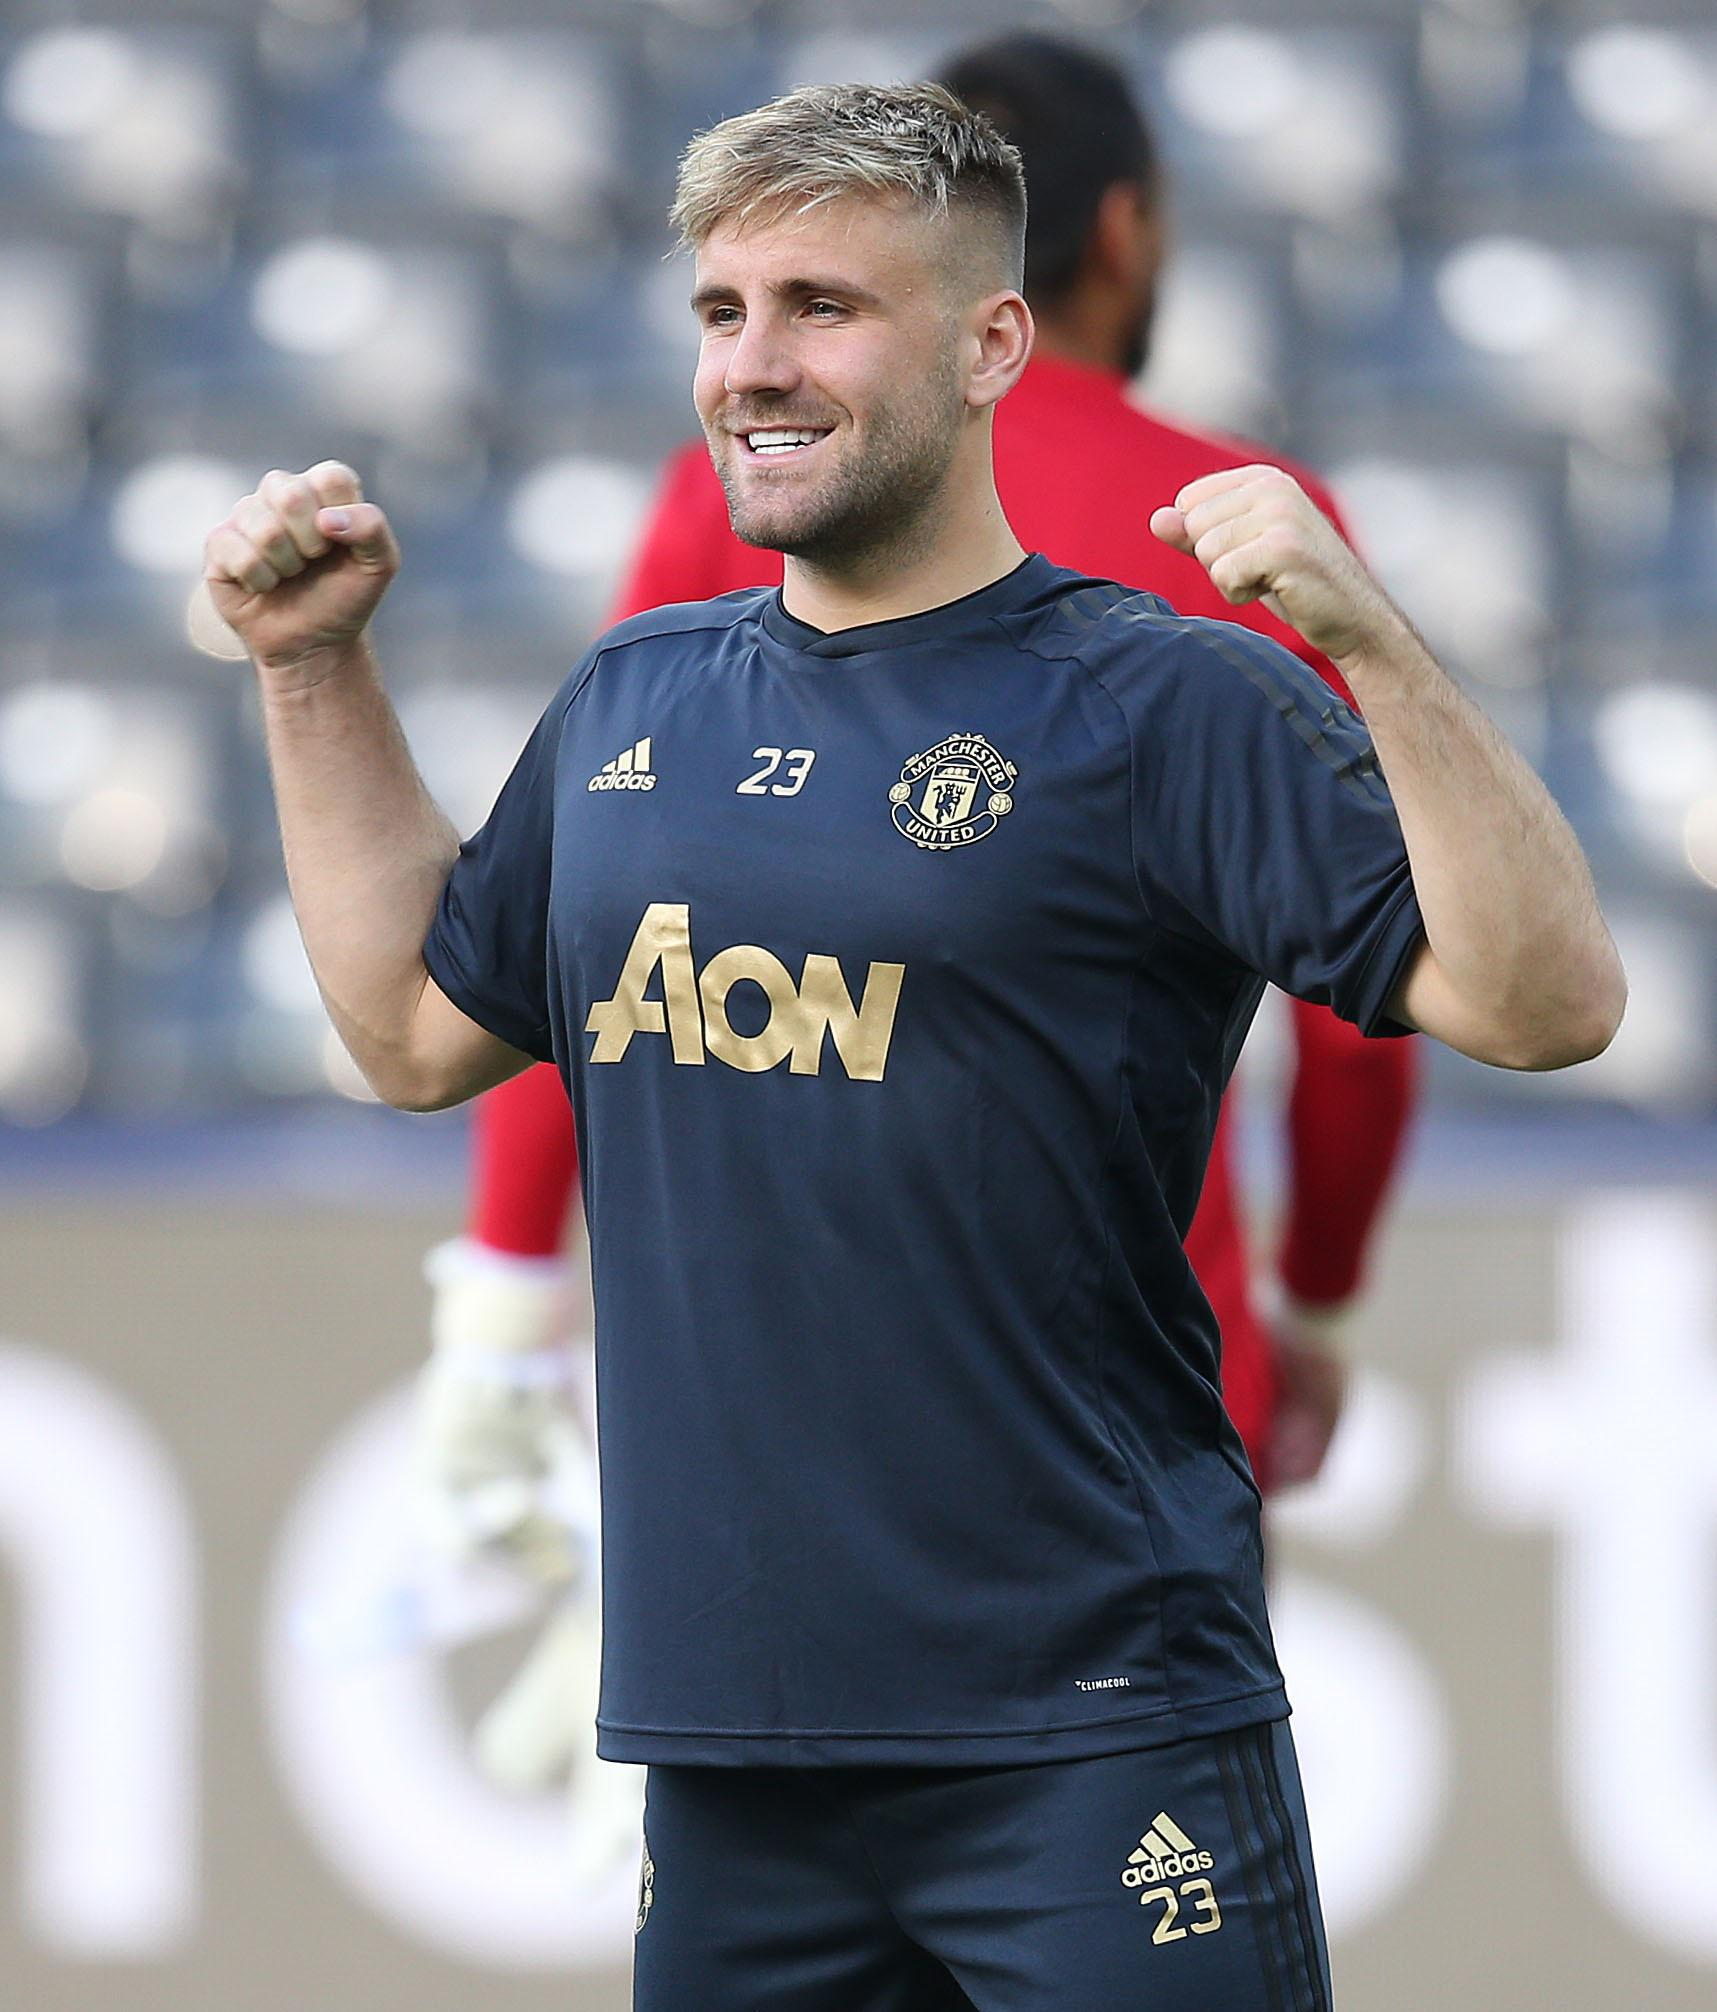 Luke Shaw takes part in a training session before United's Champions League game against Young Boys in Switzerland